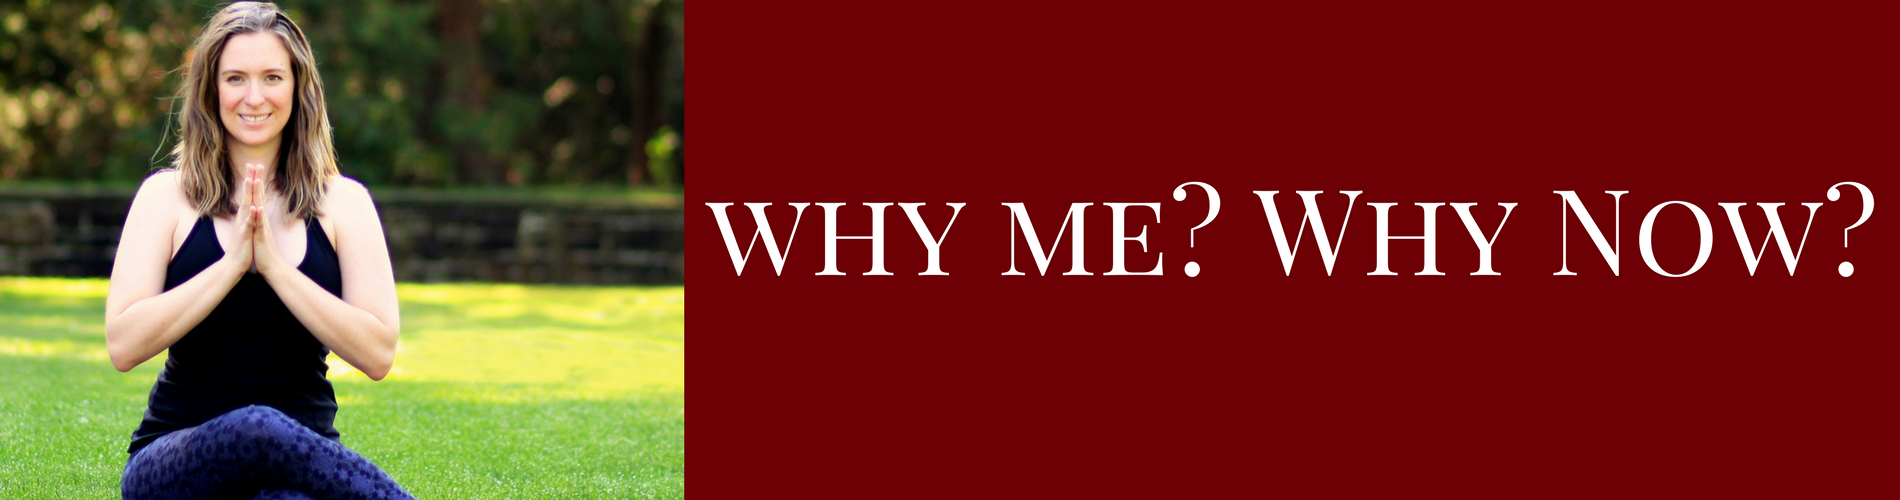 why me-